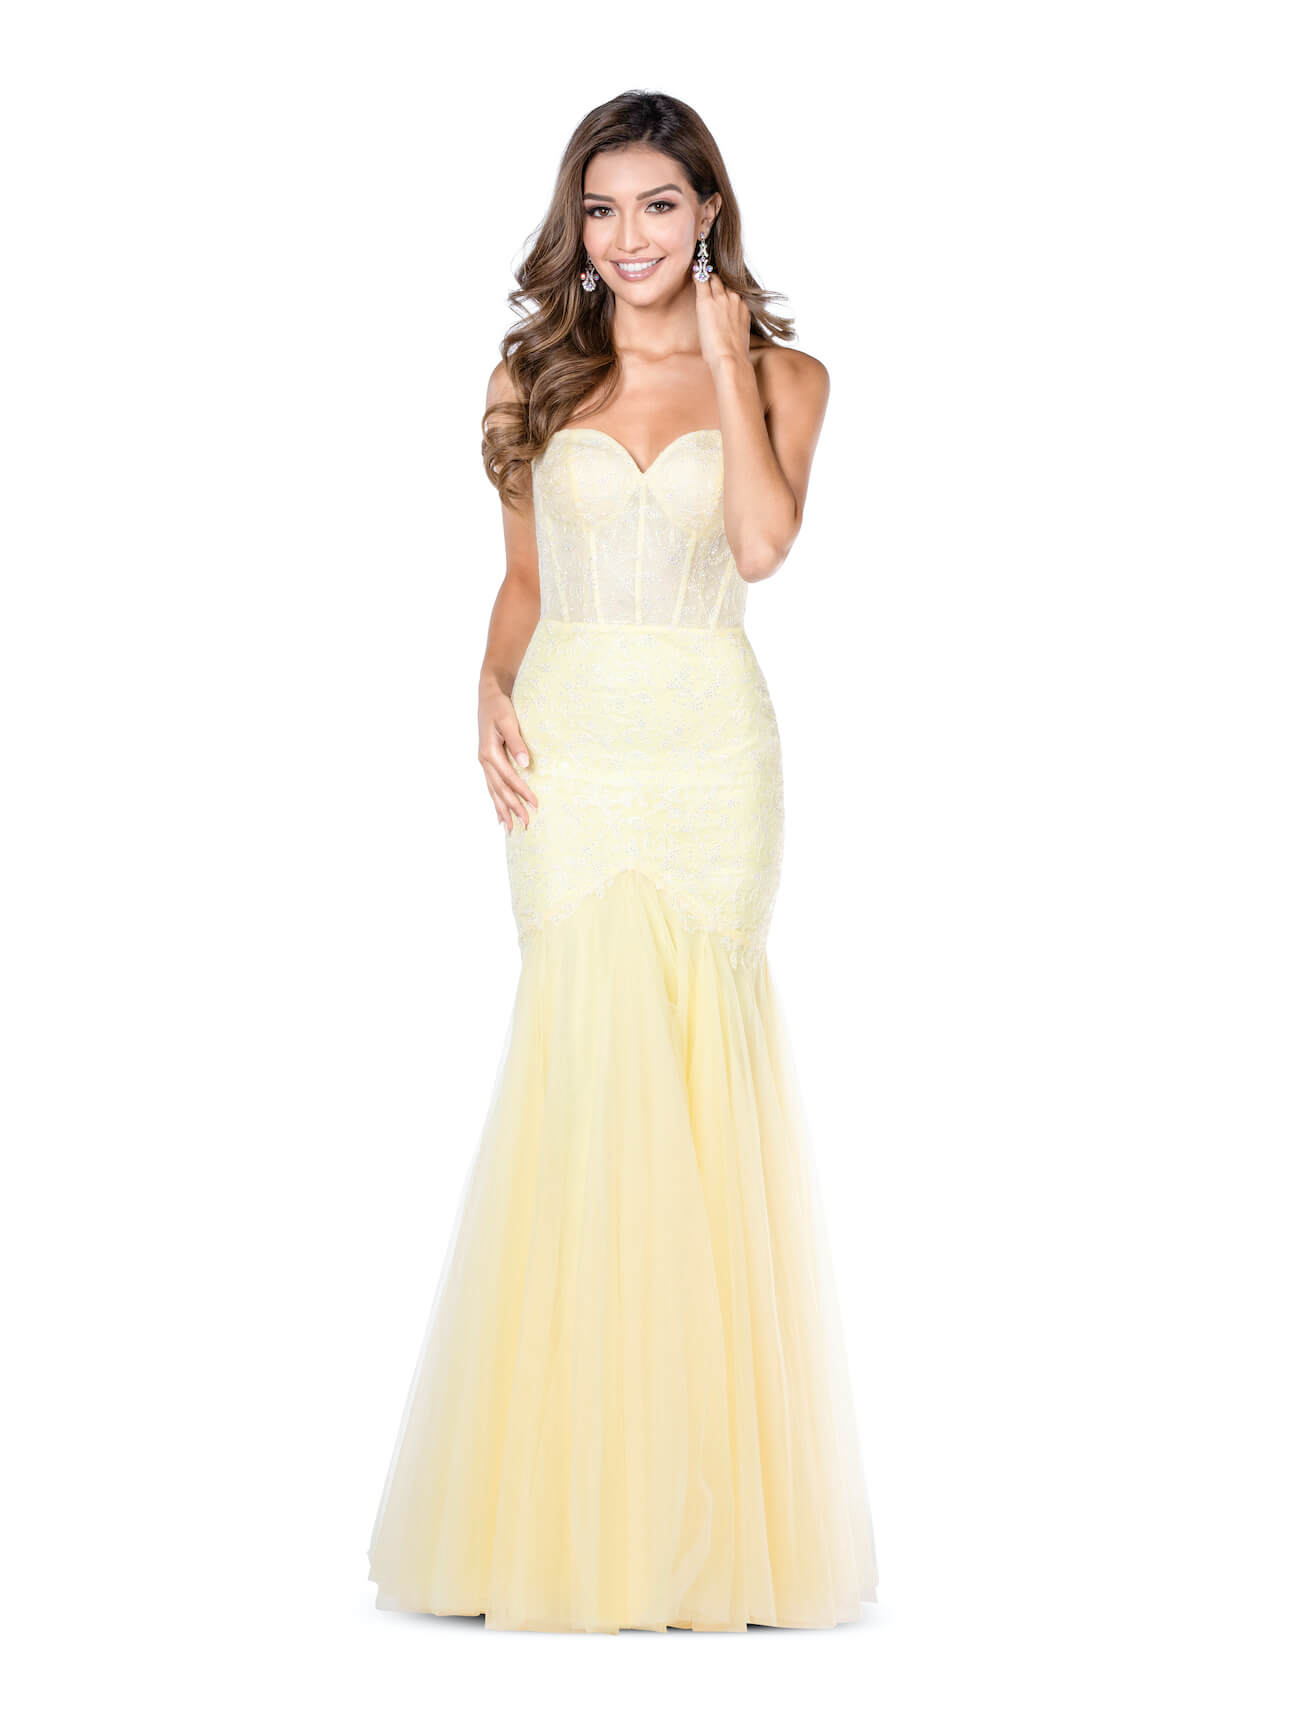 Vienna Yellow Size 8 Corset Tall Height Sweetheart Mermaid Dress on Queenly